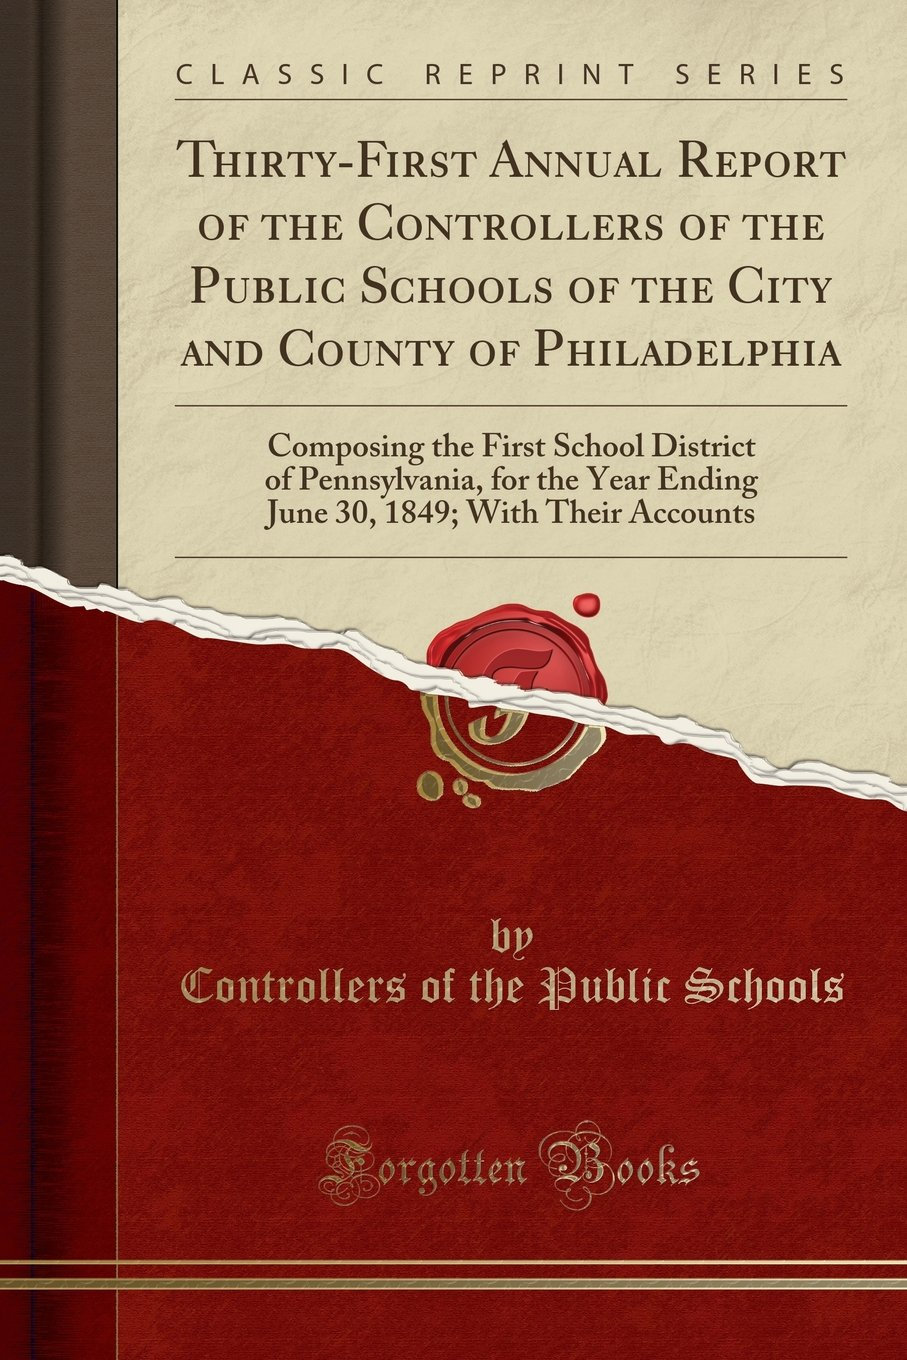 Download Thirty-First Annual Report of the Controllers of the Public Schools of the City and County of Philadelphia: Composing the First School District of ... 1849; With Their Accounts (Classic Reprint) ebook